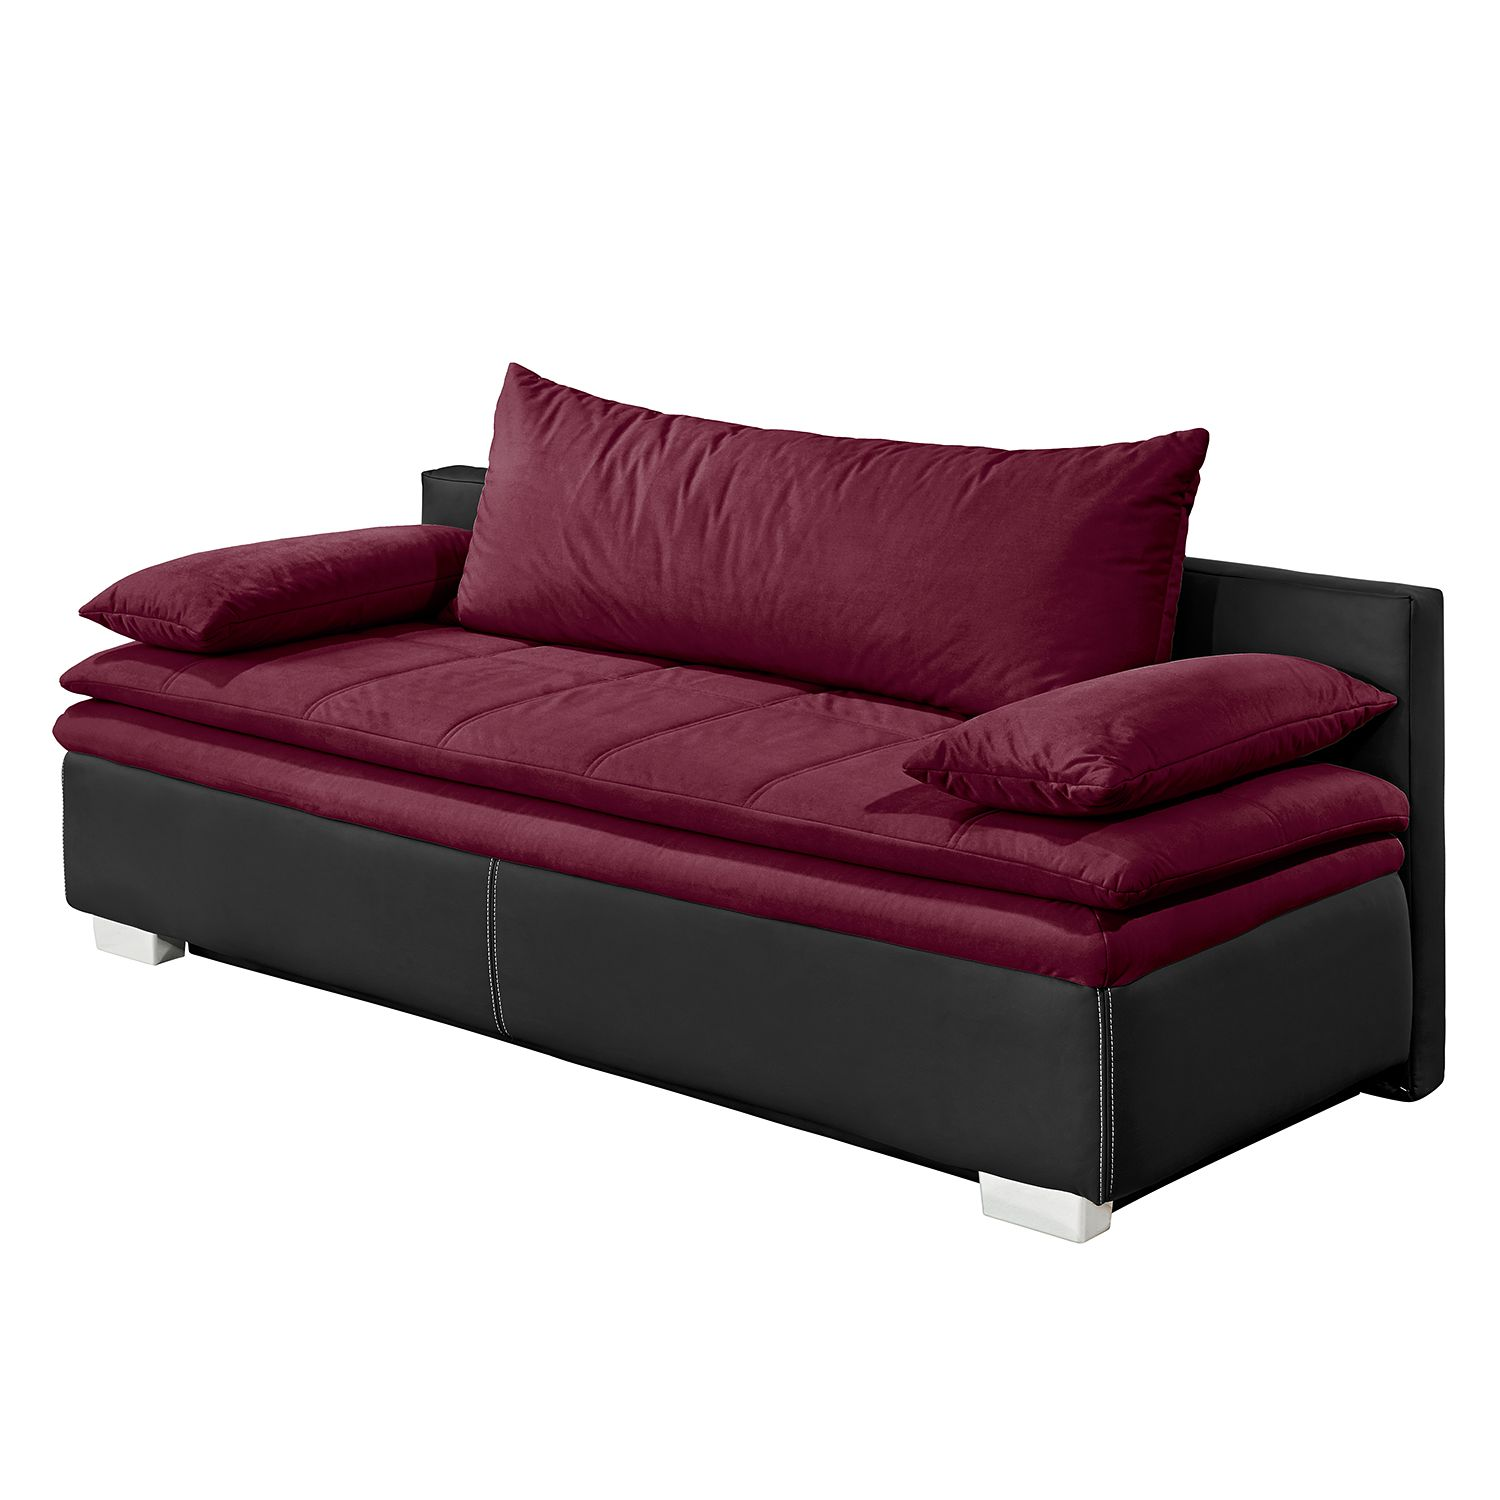 rotes sofa online kaufen. Black Bedroom Furniture Sets. Home Design Ideas